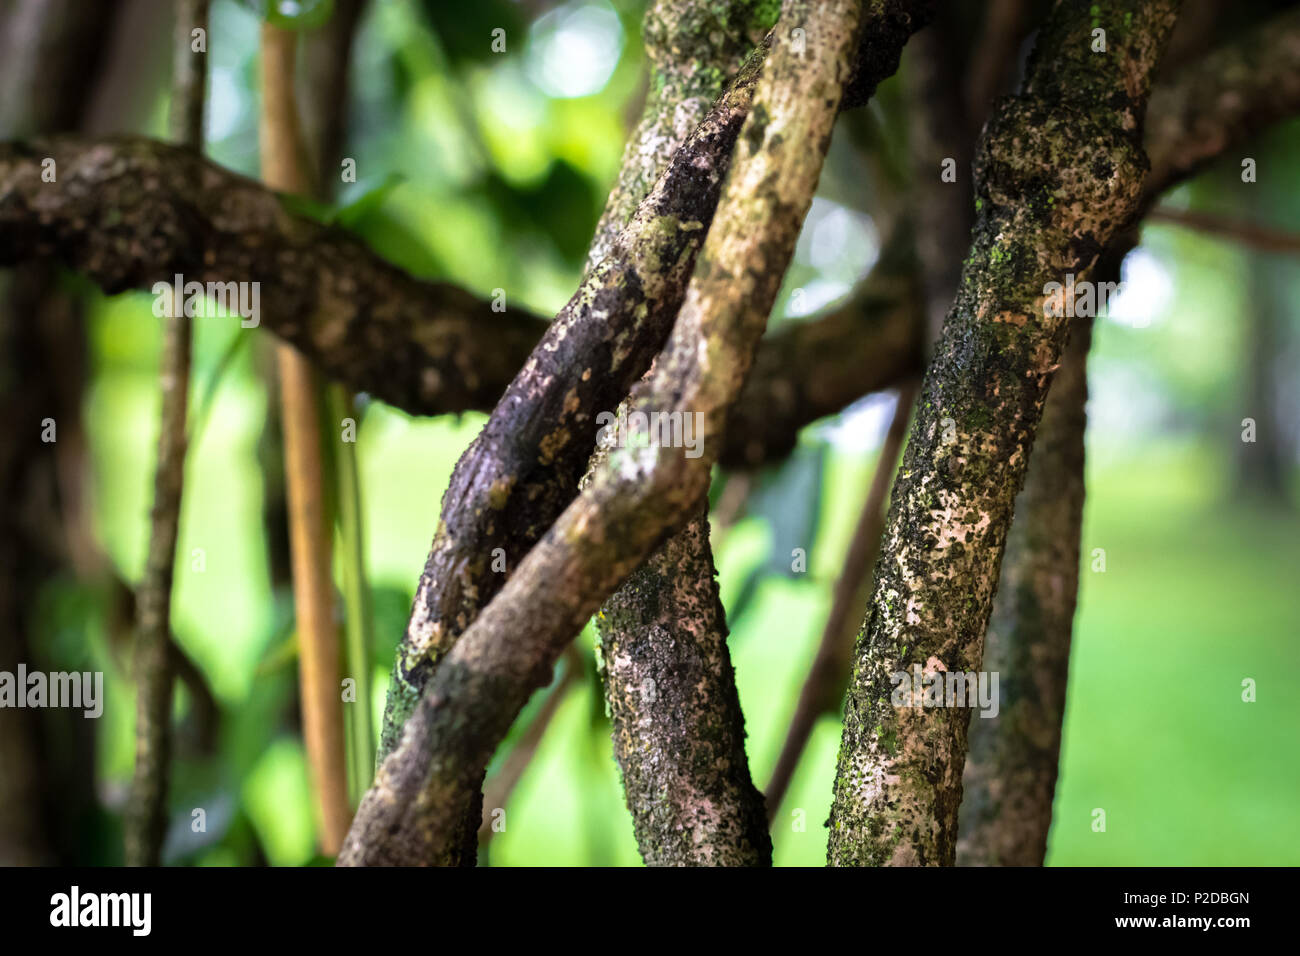 wet vines of a tree with a blurry background - Stock Image